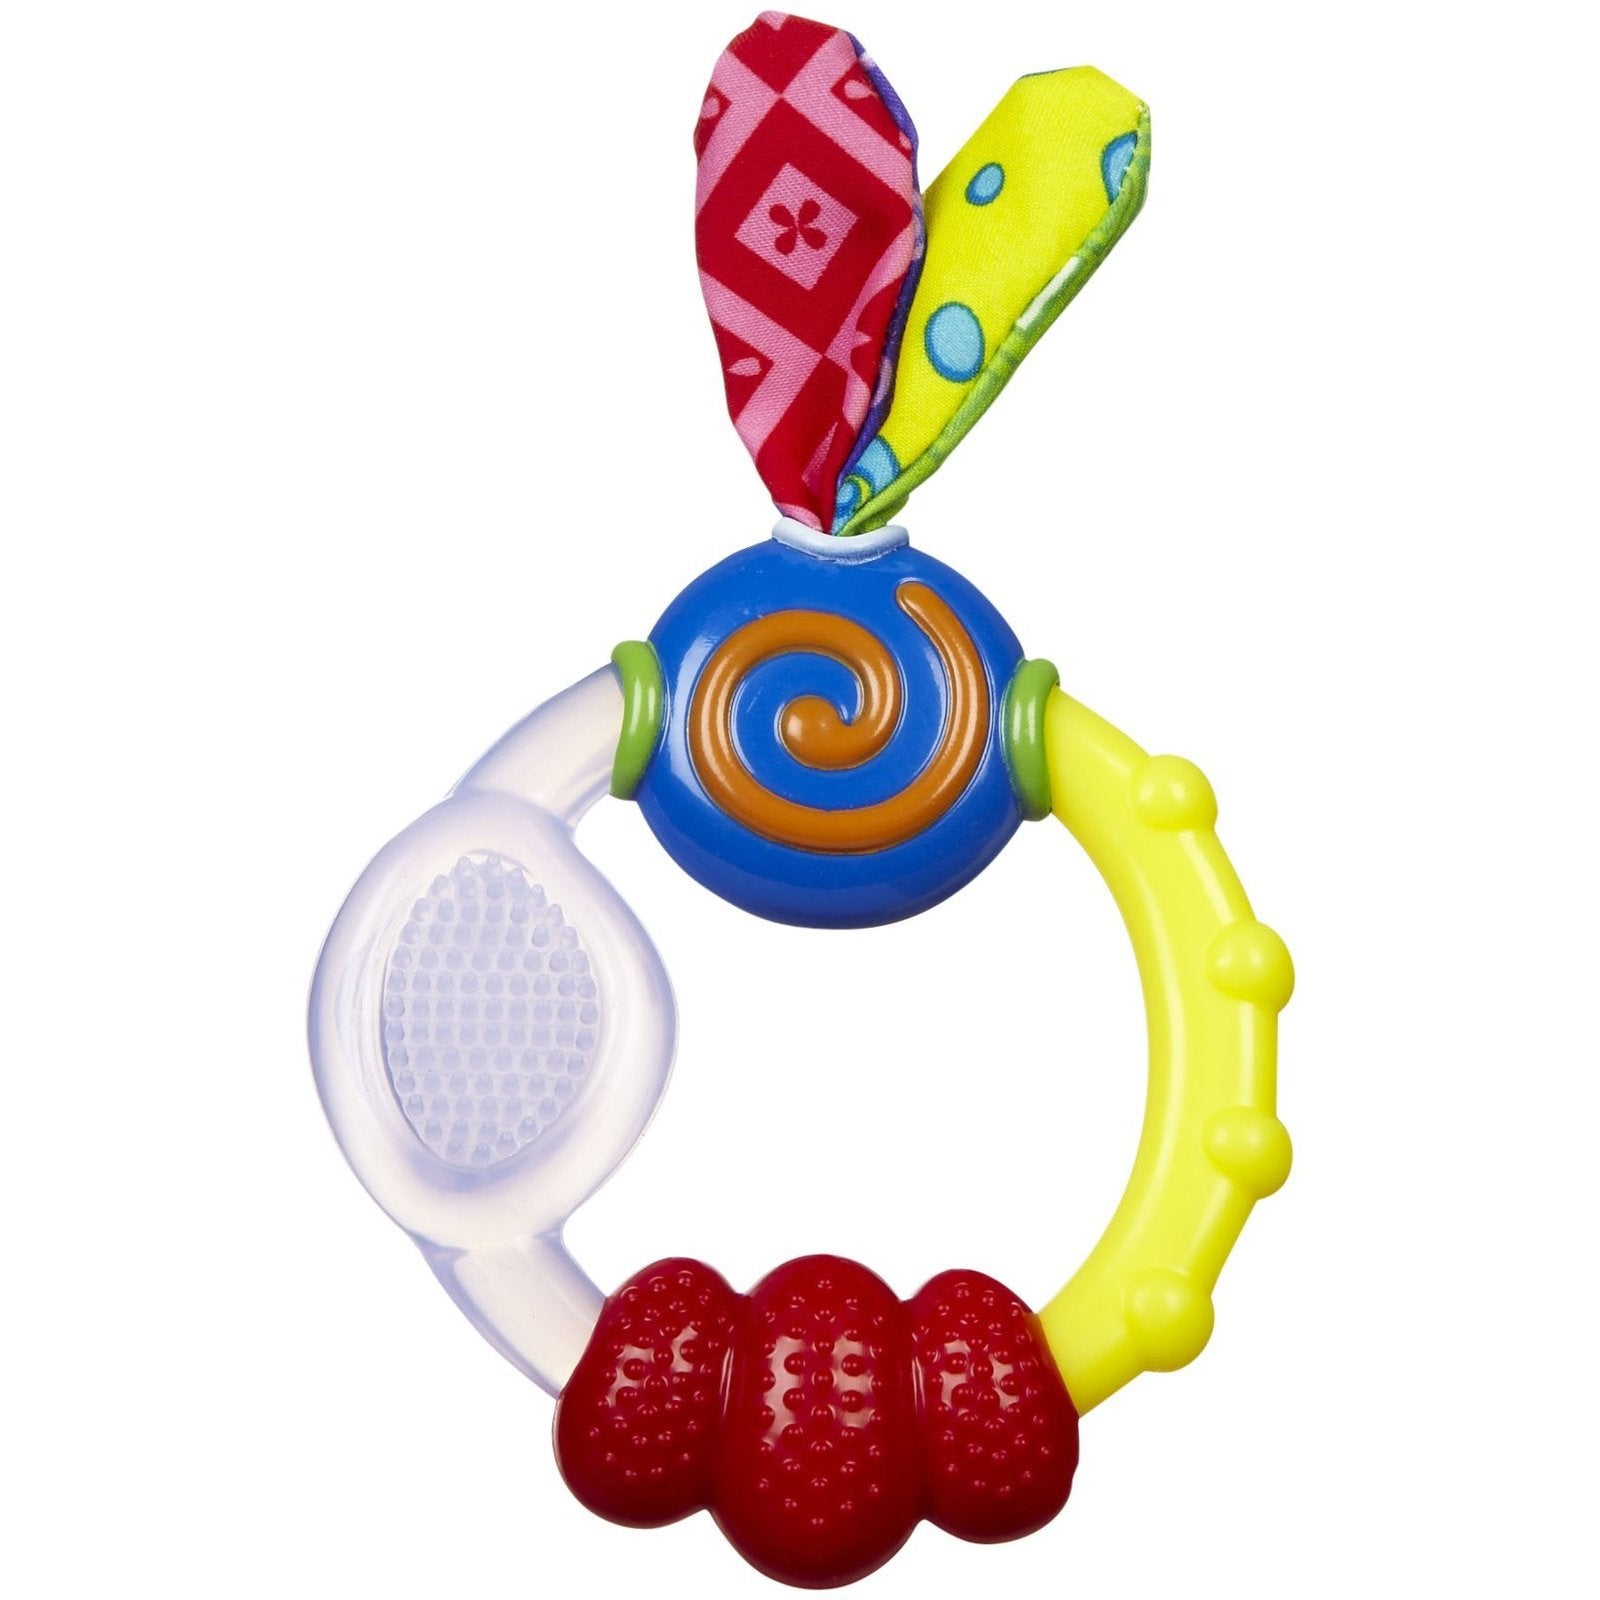 Teething toys for 3 month old